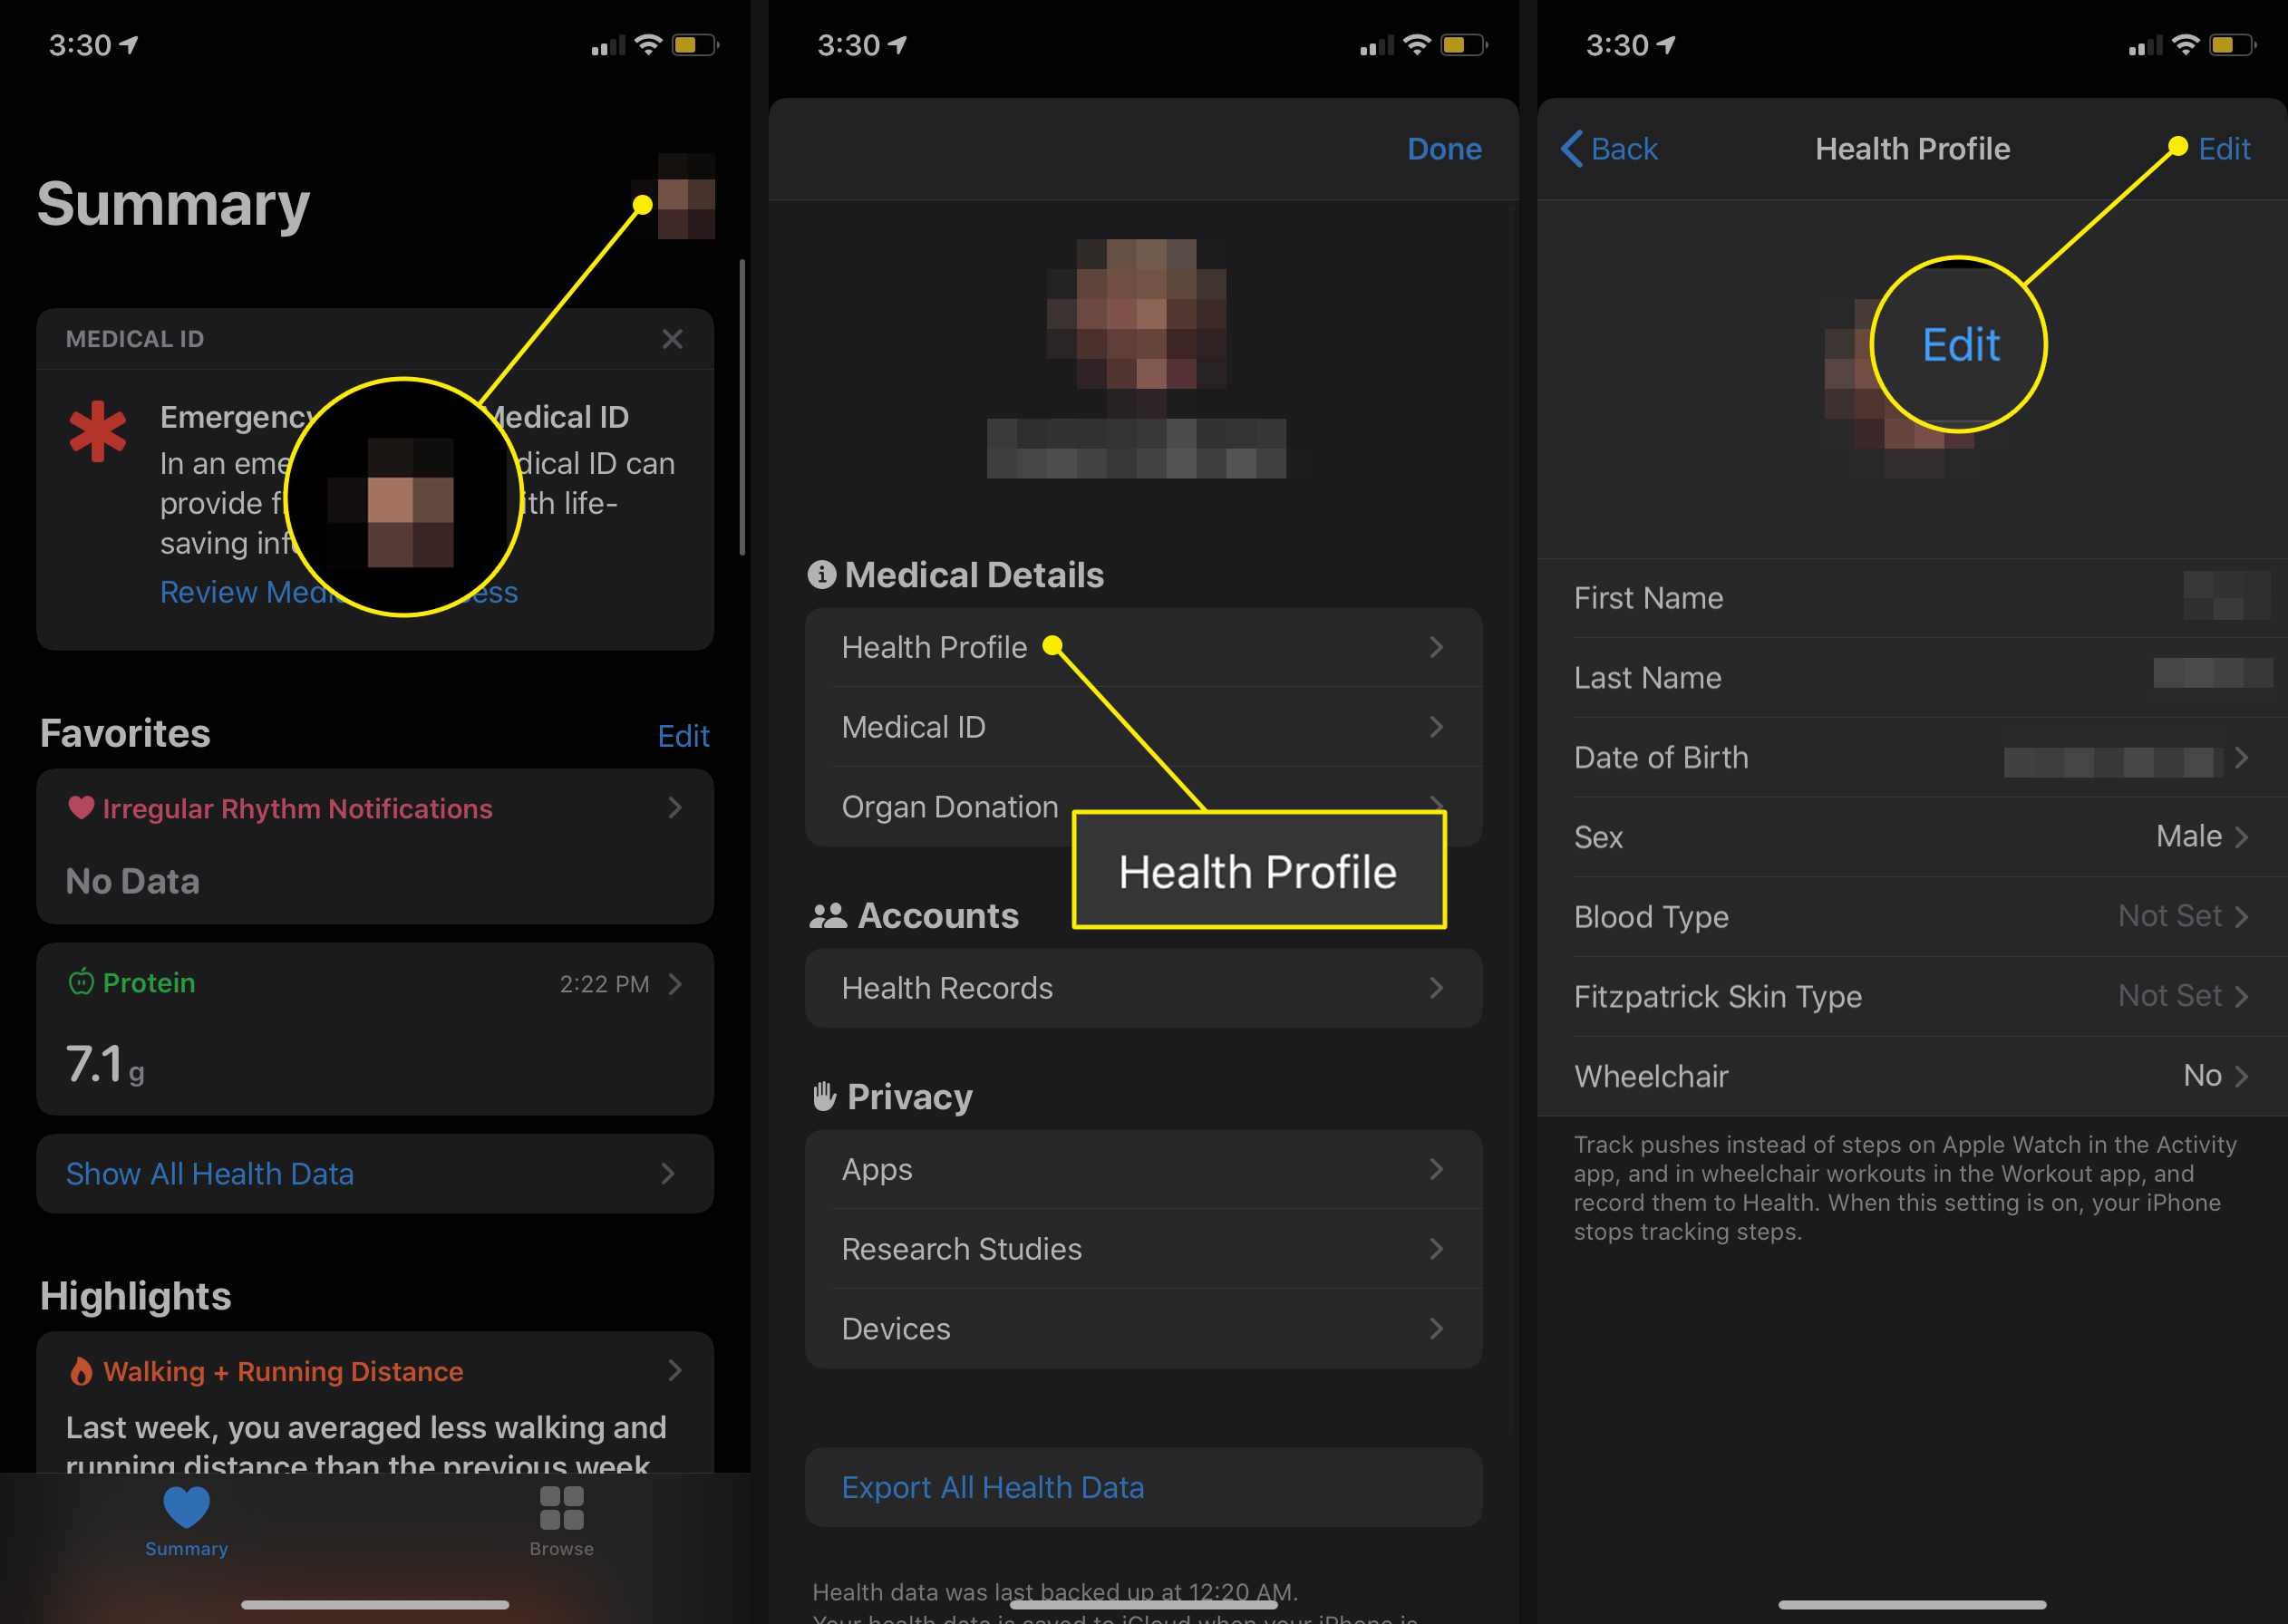 The profile, Health Profile, and Edit selections